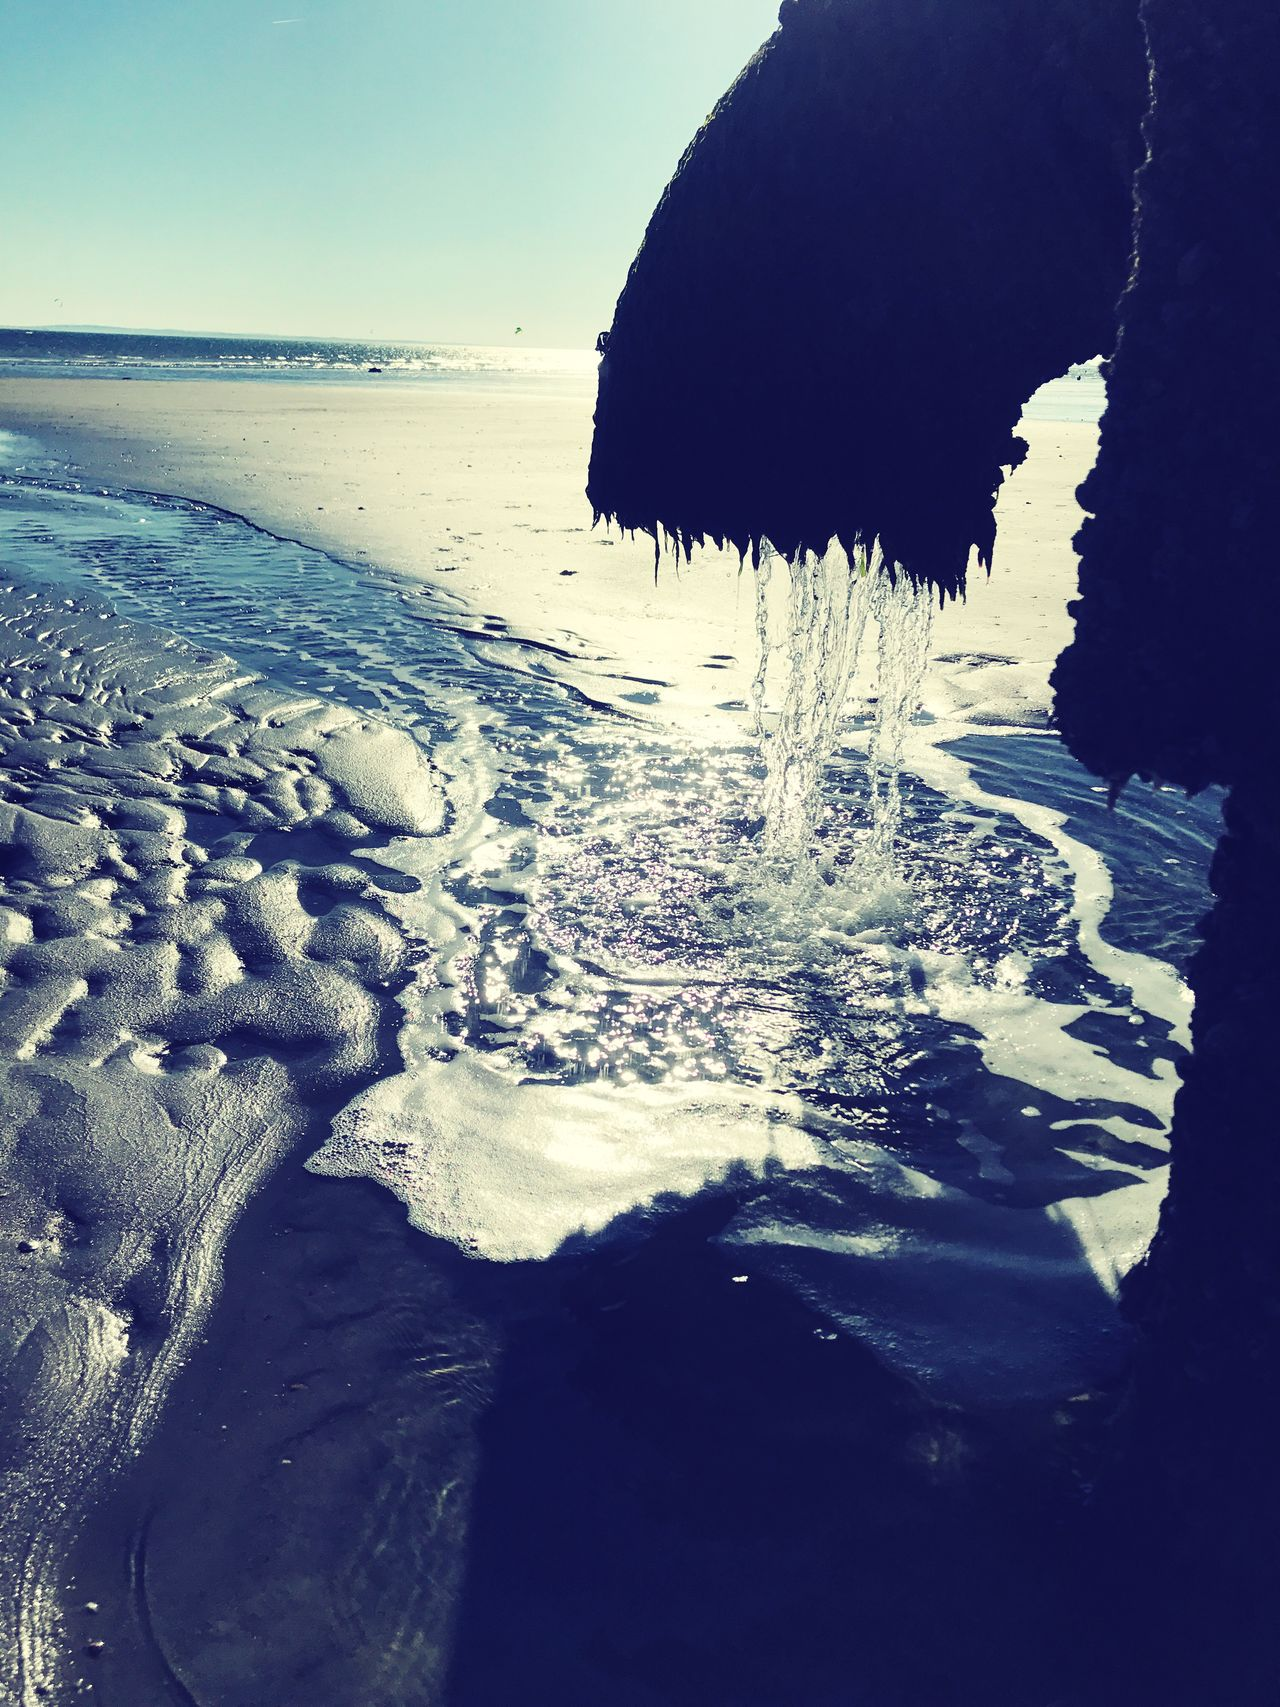 Returning the water to the sea. Water Sea Beach Beauty In Nature Scenics Tranquility Horizon Over Water Outdoors Sand Wave The Great Outdoors - 2017 EyeEm Awards EyeEmBestPics EyeEm Best Shots EyeEmNewHere Vacations Peace Pipe Splash Water Flow Dripping Sunlight Sun Rays Froth Bubbles